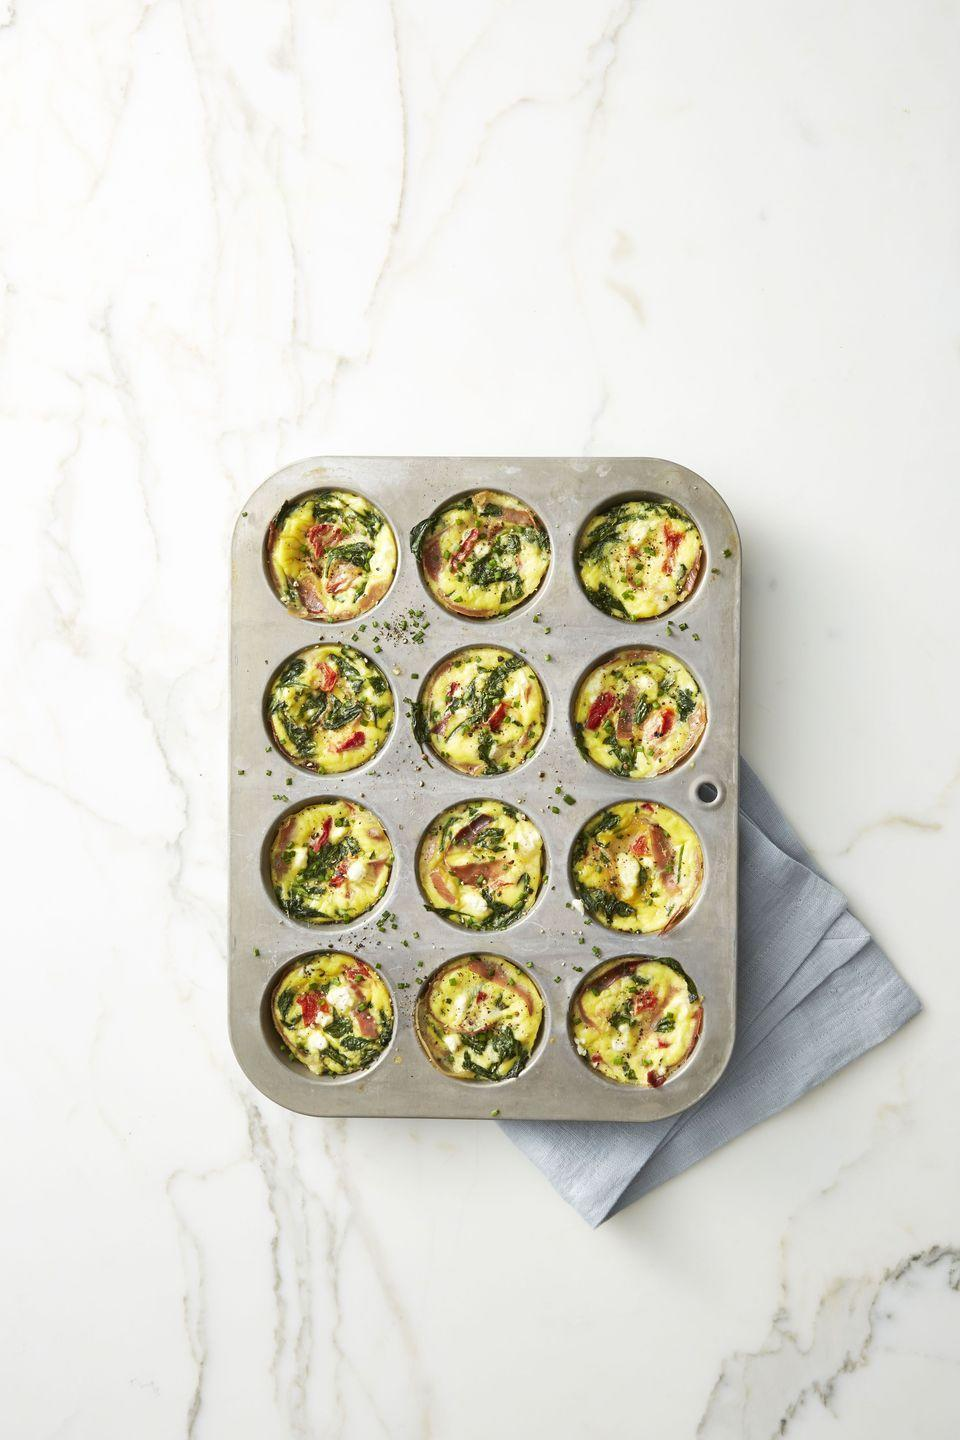 """<p>Because frittata <a href=""""https://www.goodhousekeeping.com/food-recipes/healthy/g4075/healthy-muffin-recipes/"""" rel=""""nofollow noopener"""" target=""""_blank"""" data-ylk=""""slk:muffins"""" class=""""link rapid-noclick-resp"""">muffins</a> are truly the best of both worlds.</p><p><em><a href=""""https://www.goodhousekeeping.com/food-recipes/easy/a42206/spinach-and-prosciutto-frittata-muffins-recipe/"""" rel=""""nofollow noopener"""" target=""""_blank"""" data-ylk=""""slk:Get the recipe for Spinach and Prosciutto Frittata Muffins »"""" class=""""link rapid-noclick-resp"""">Get the recipe for Spinach and Prosciutto Frittata Muffins »</a></em></p>"""